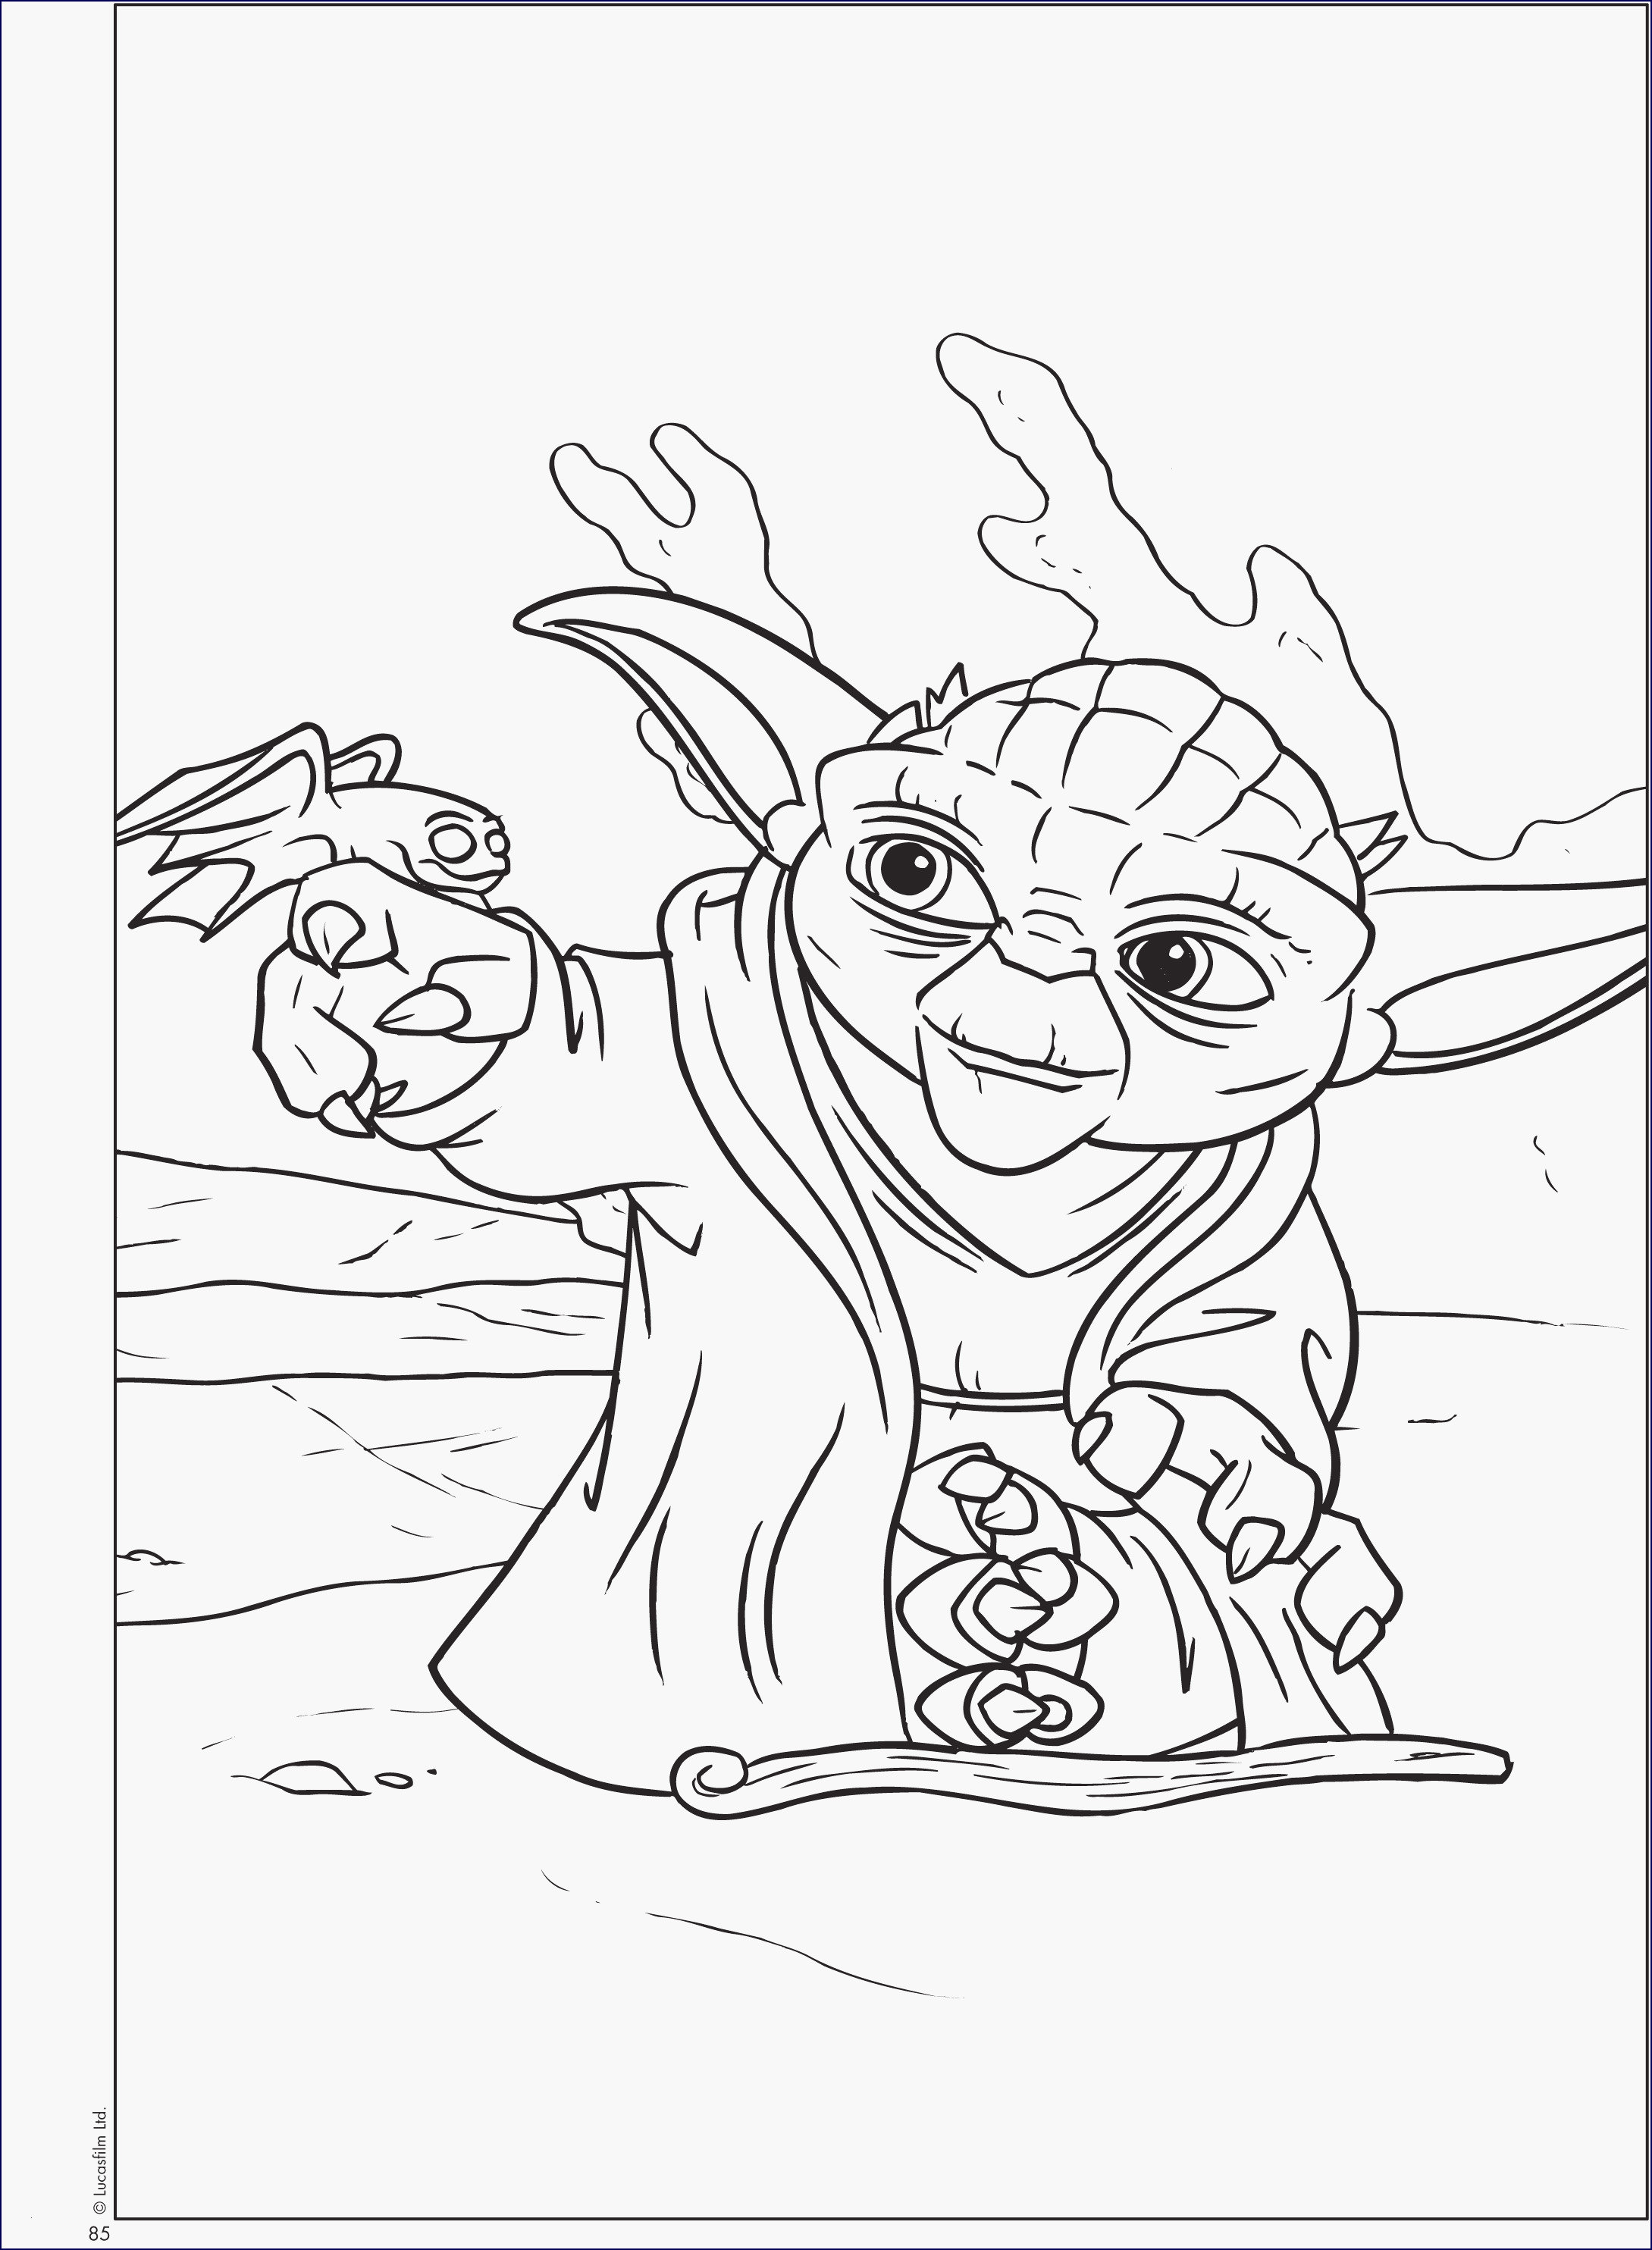 Ausmalbilder Star Wars the Clone Wars Frisch Yoda Ausmalbilder Elegant Star Wars Free Coloring Pages Awesome Star Galerie